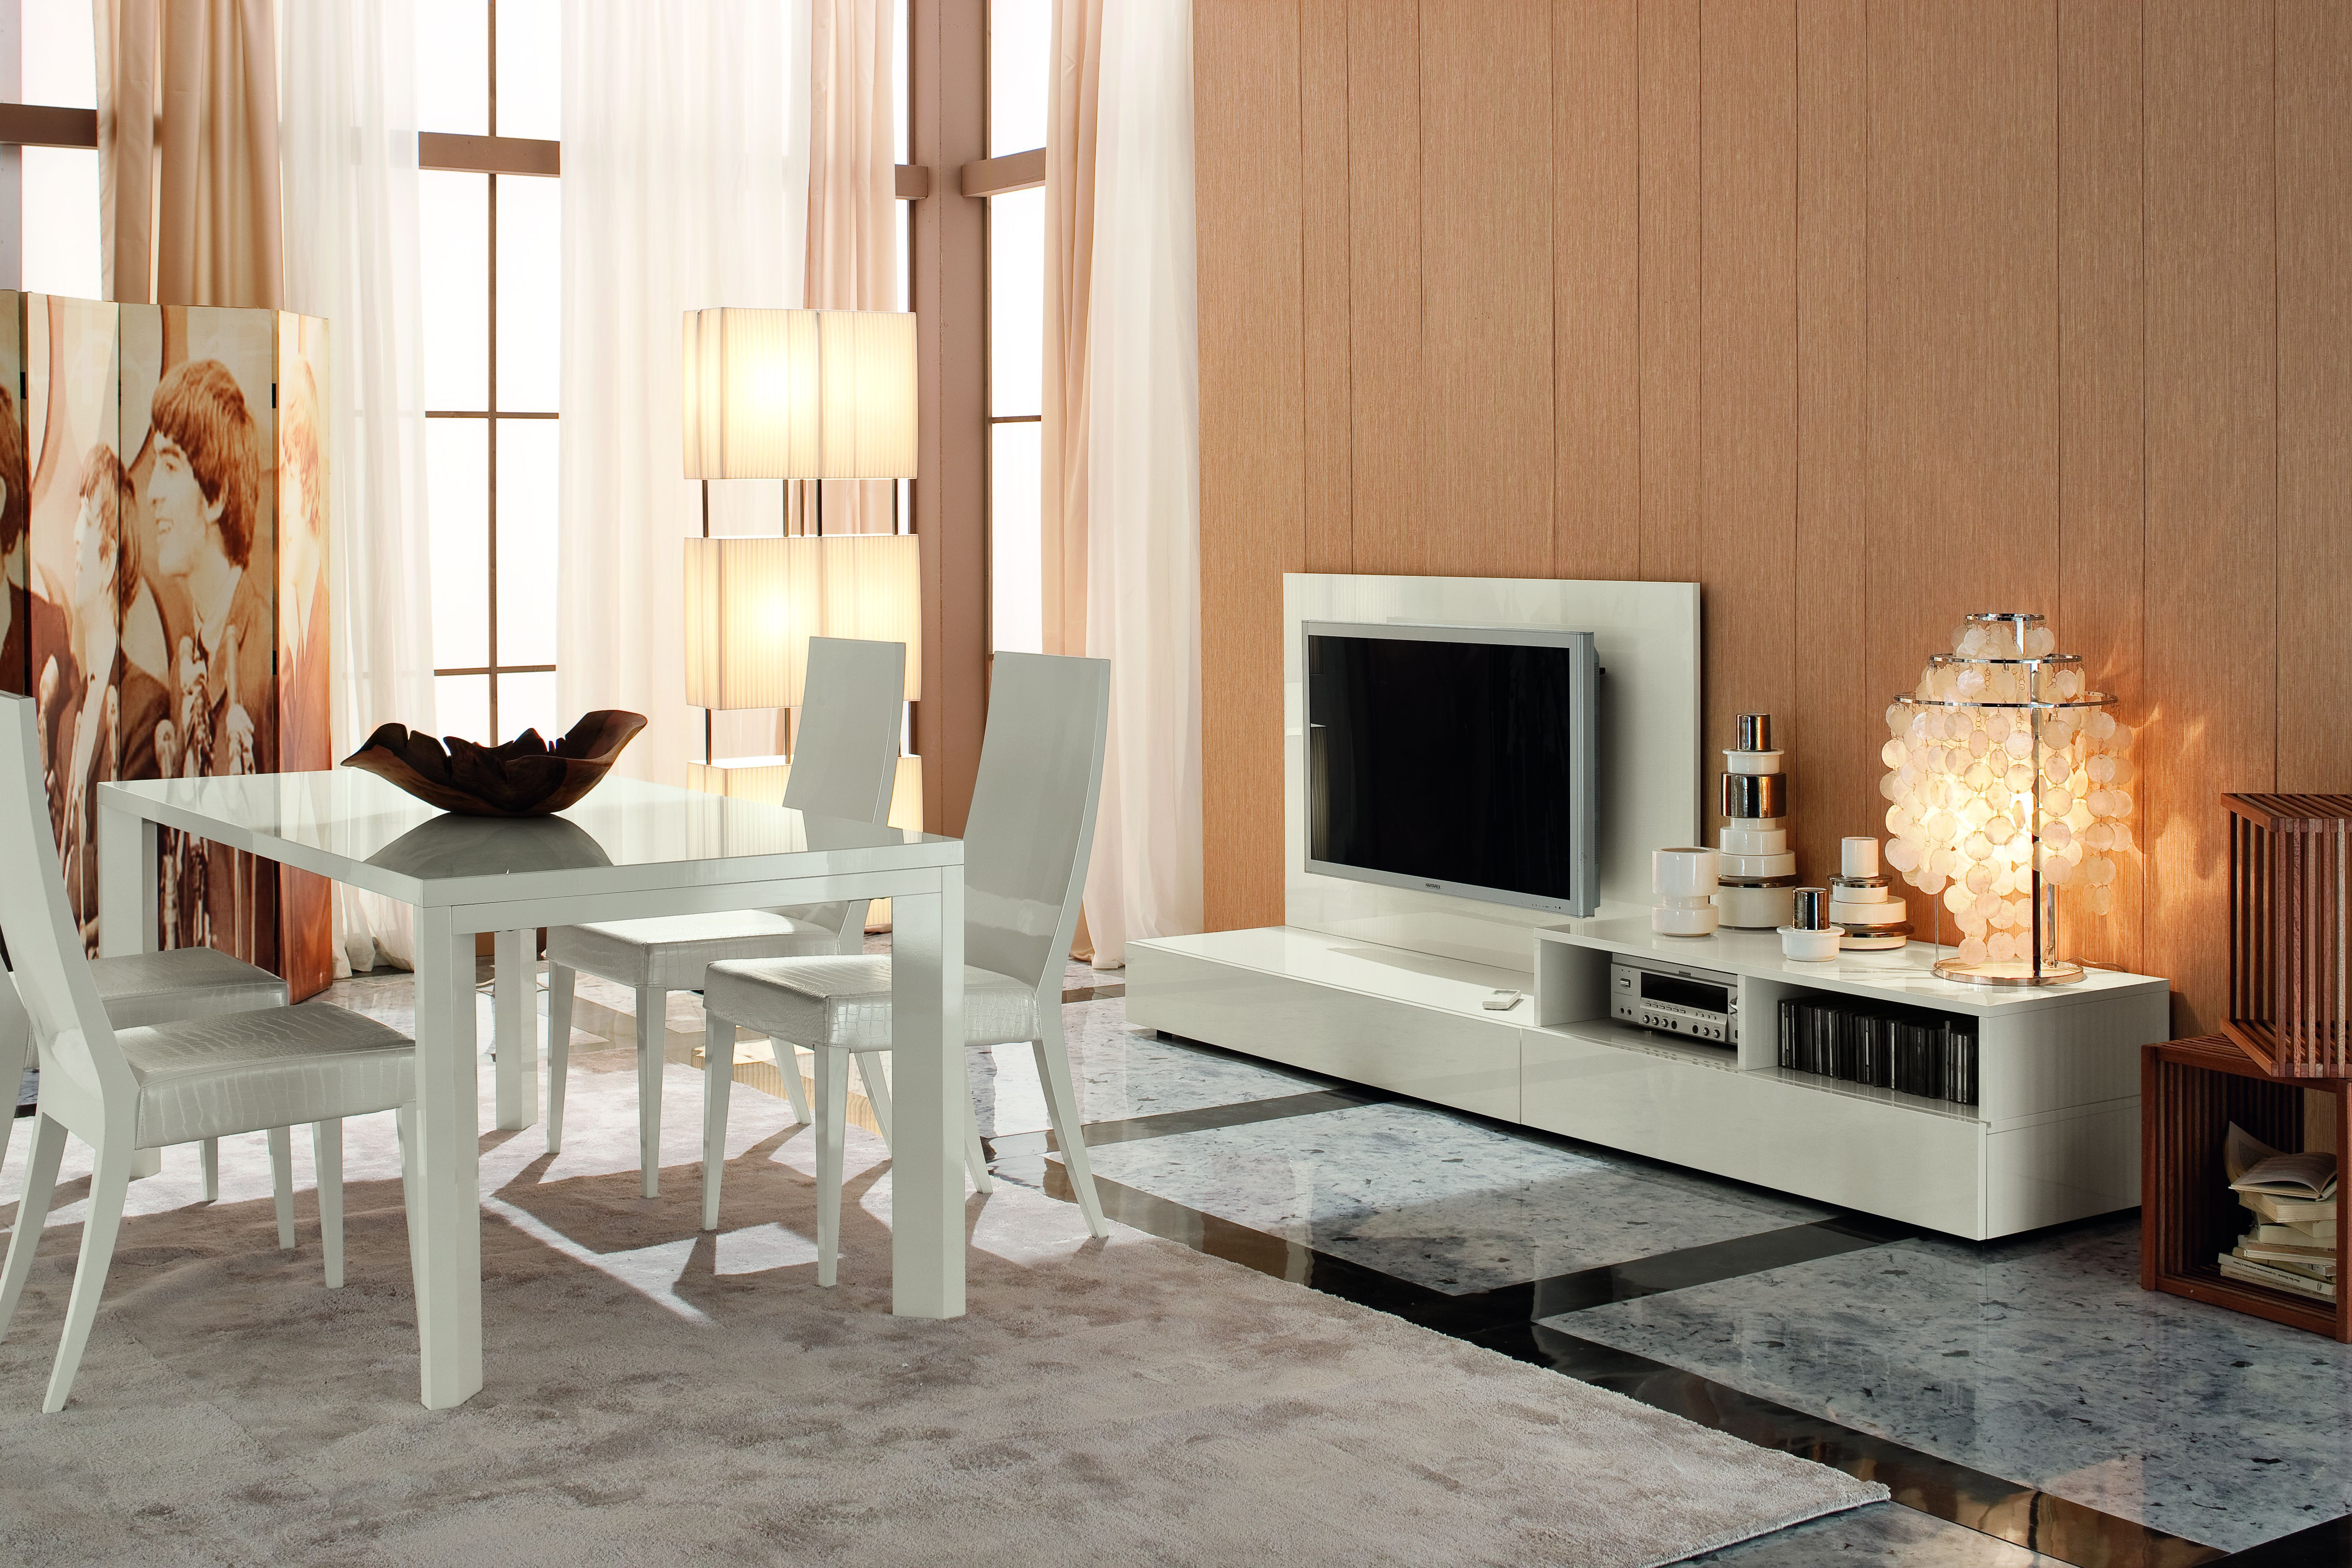 nightfly dining table and tv stand by rossetto rossetto furniture rh pinterest co uk Living Room TV Cabinets TV Stand Living Room Ideas